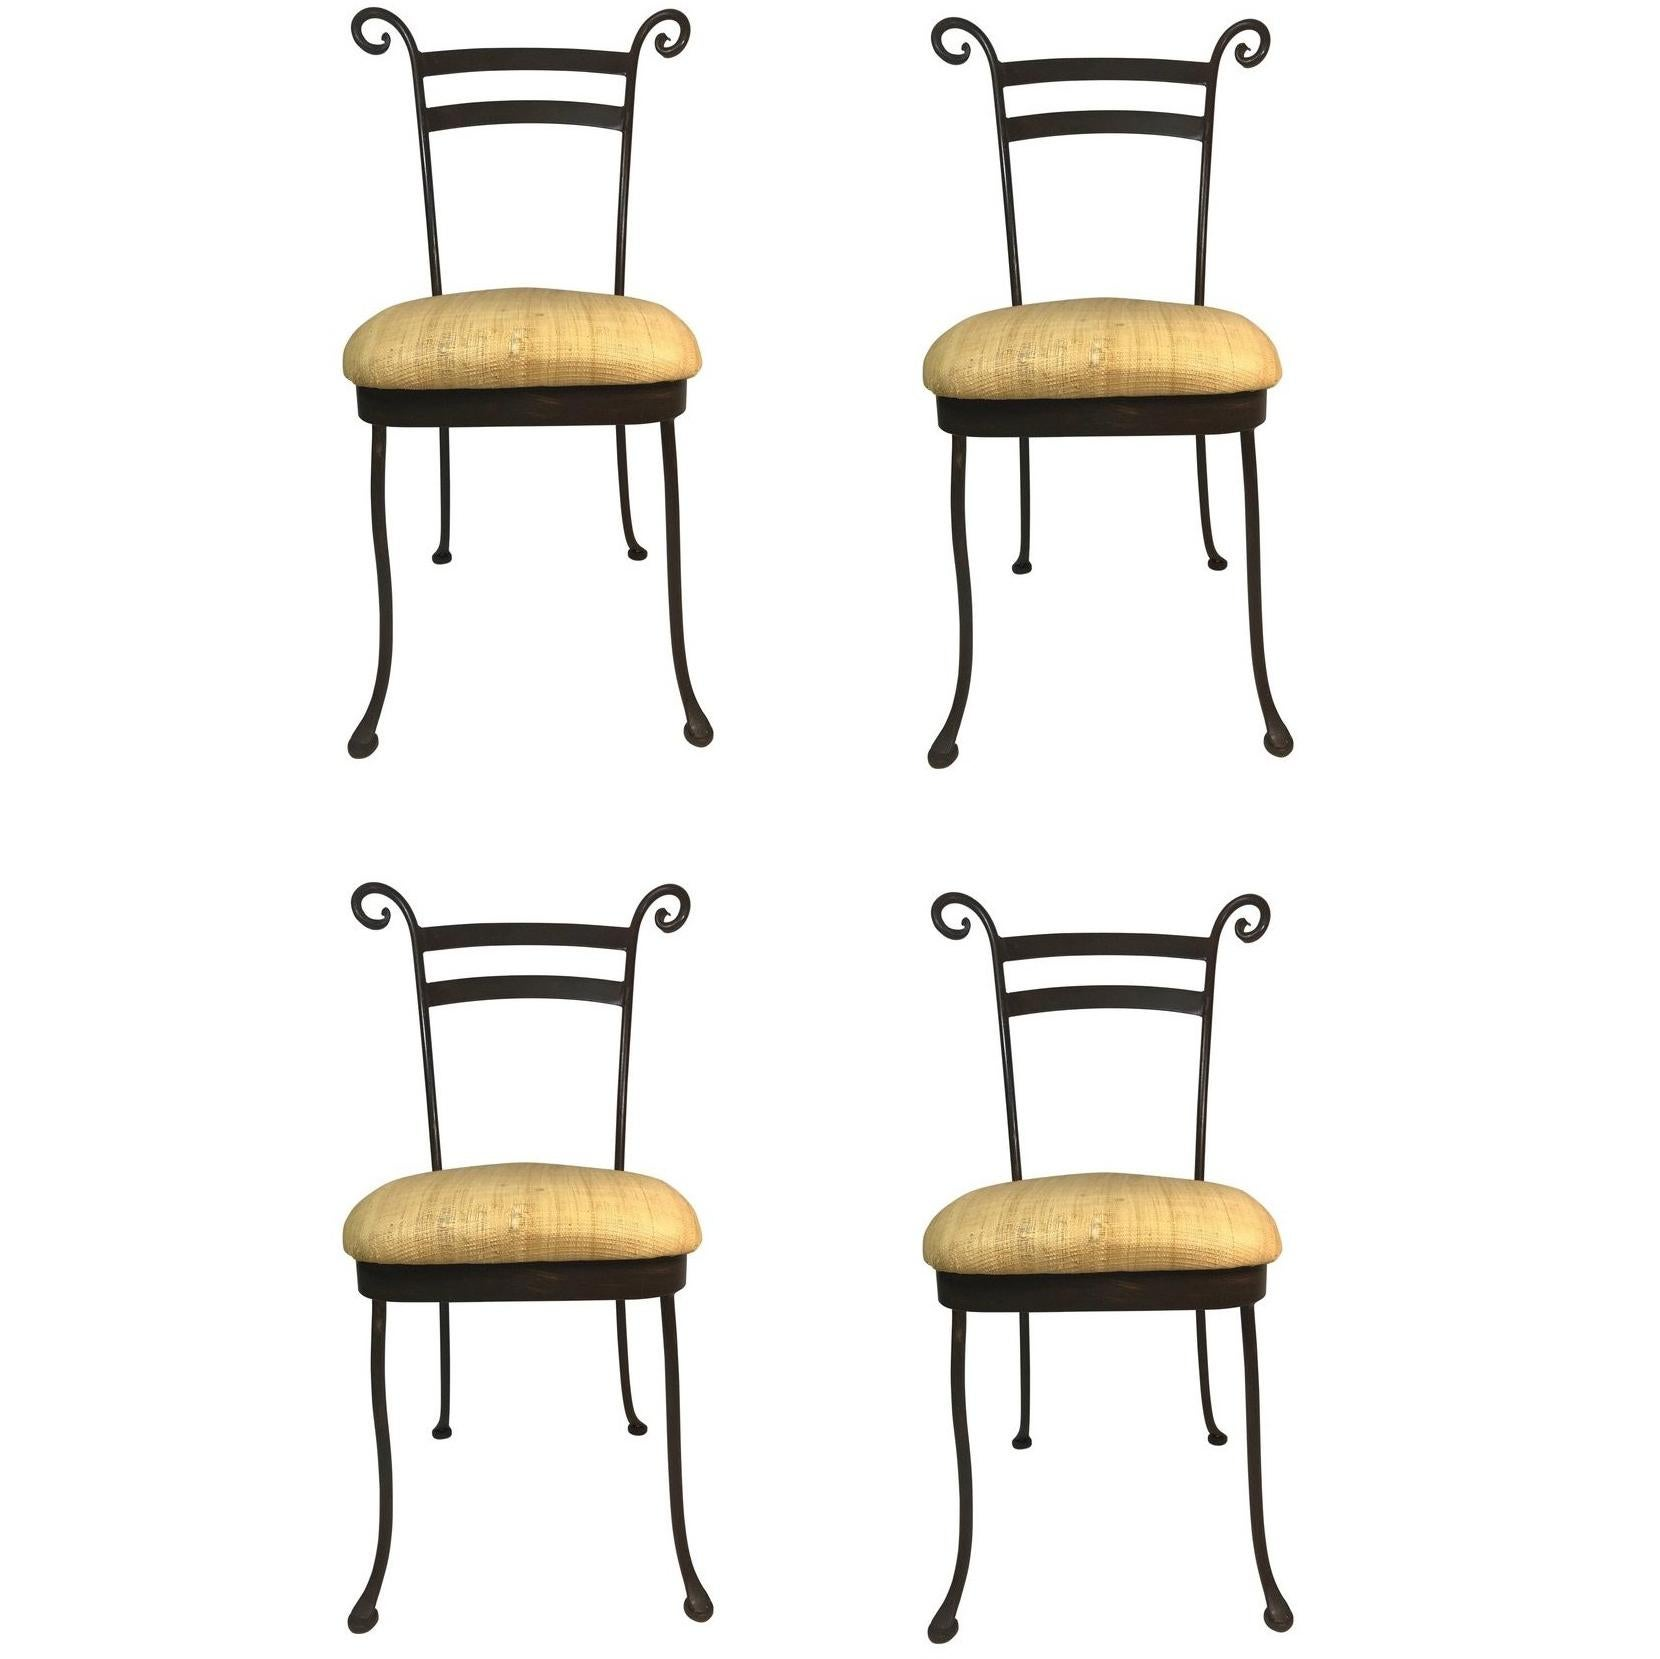 parisian cafe chairs desk chair pbteen french style bistro rattan dining for sale at vintage set of 4 iron side handcrafted